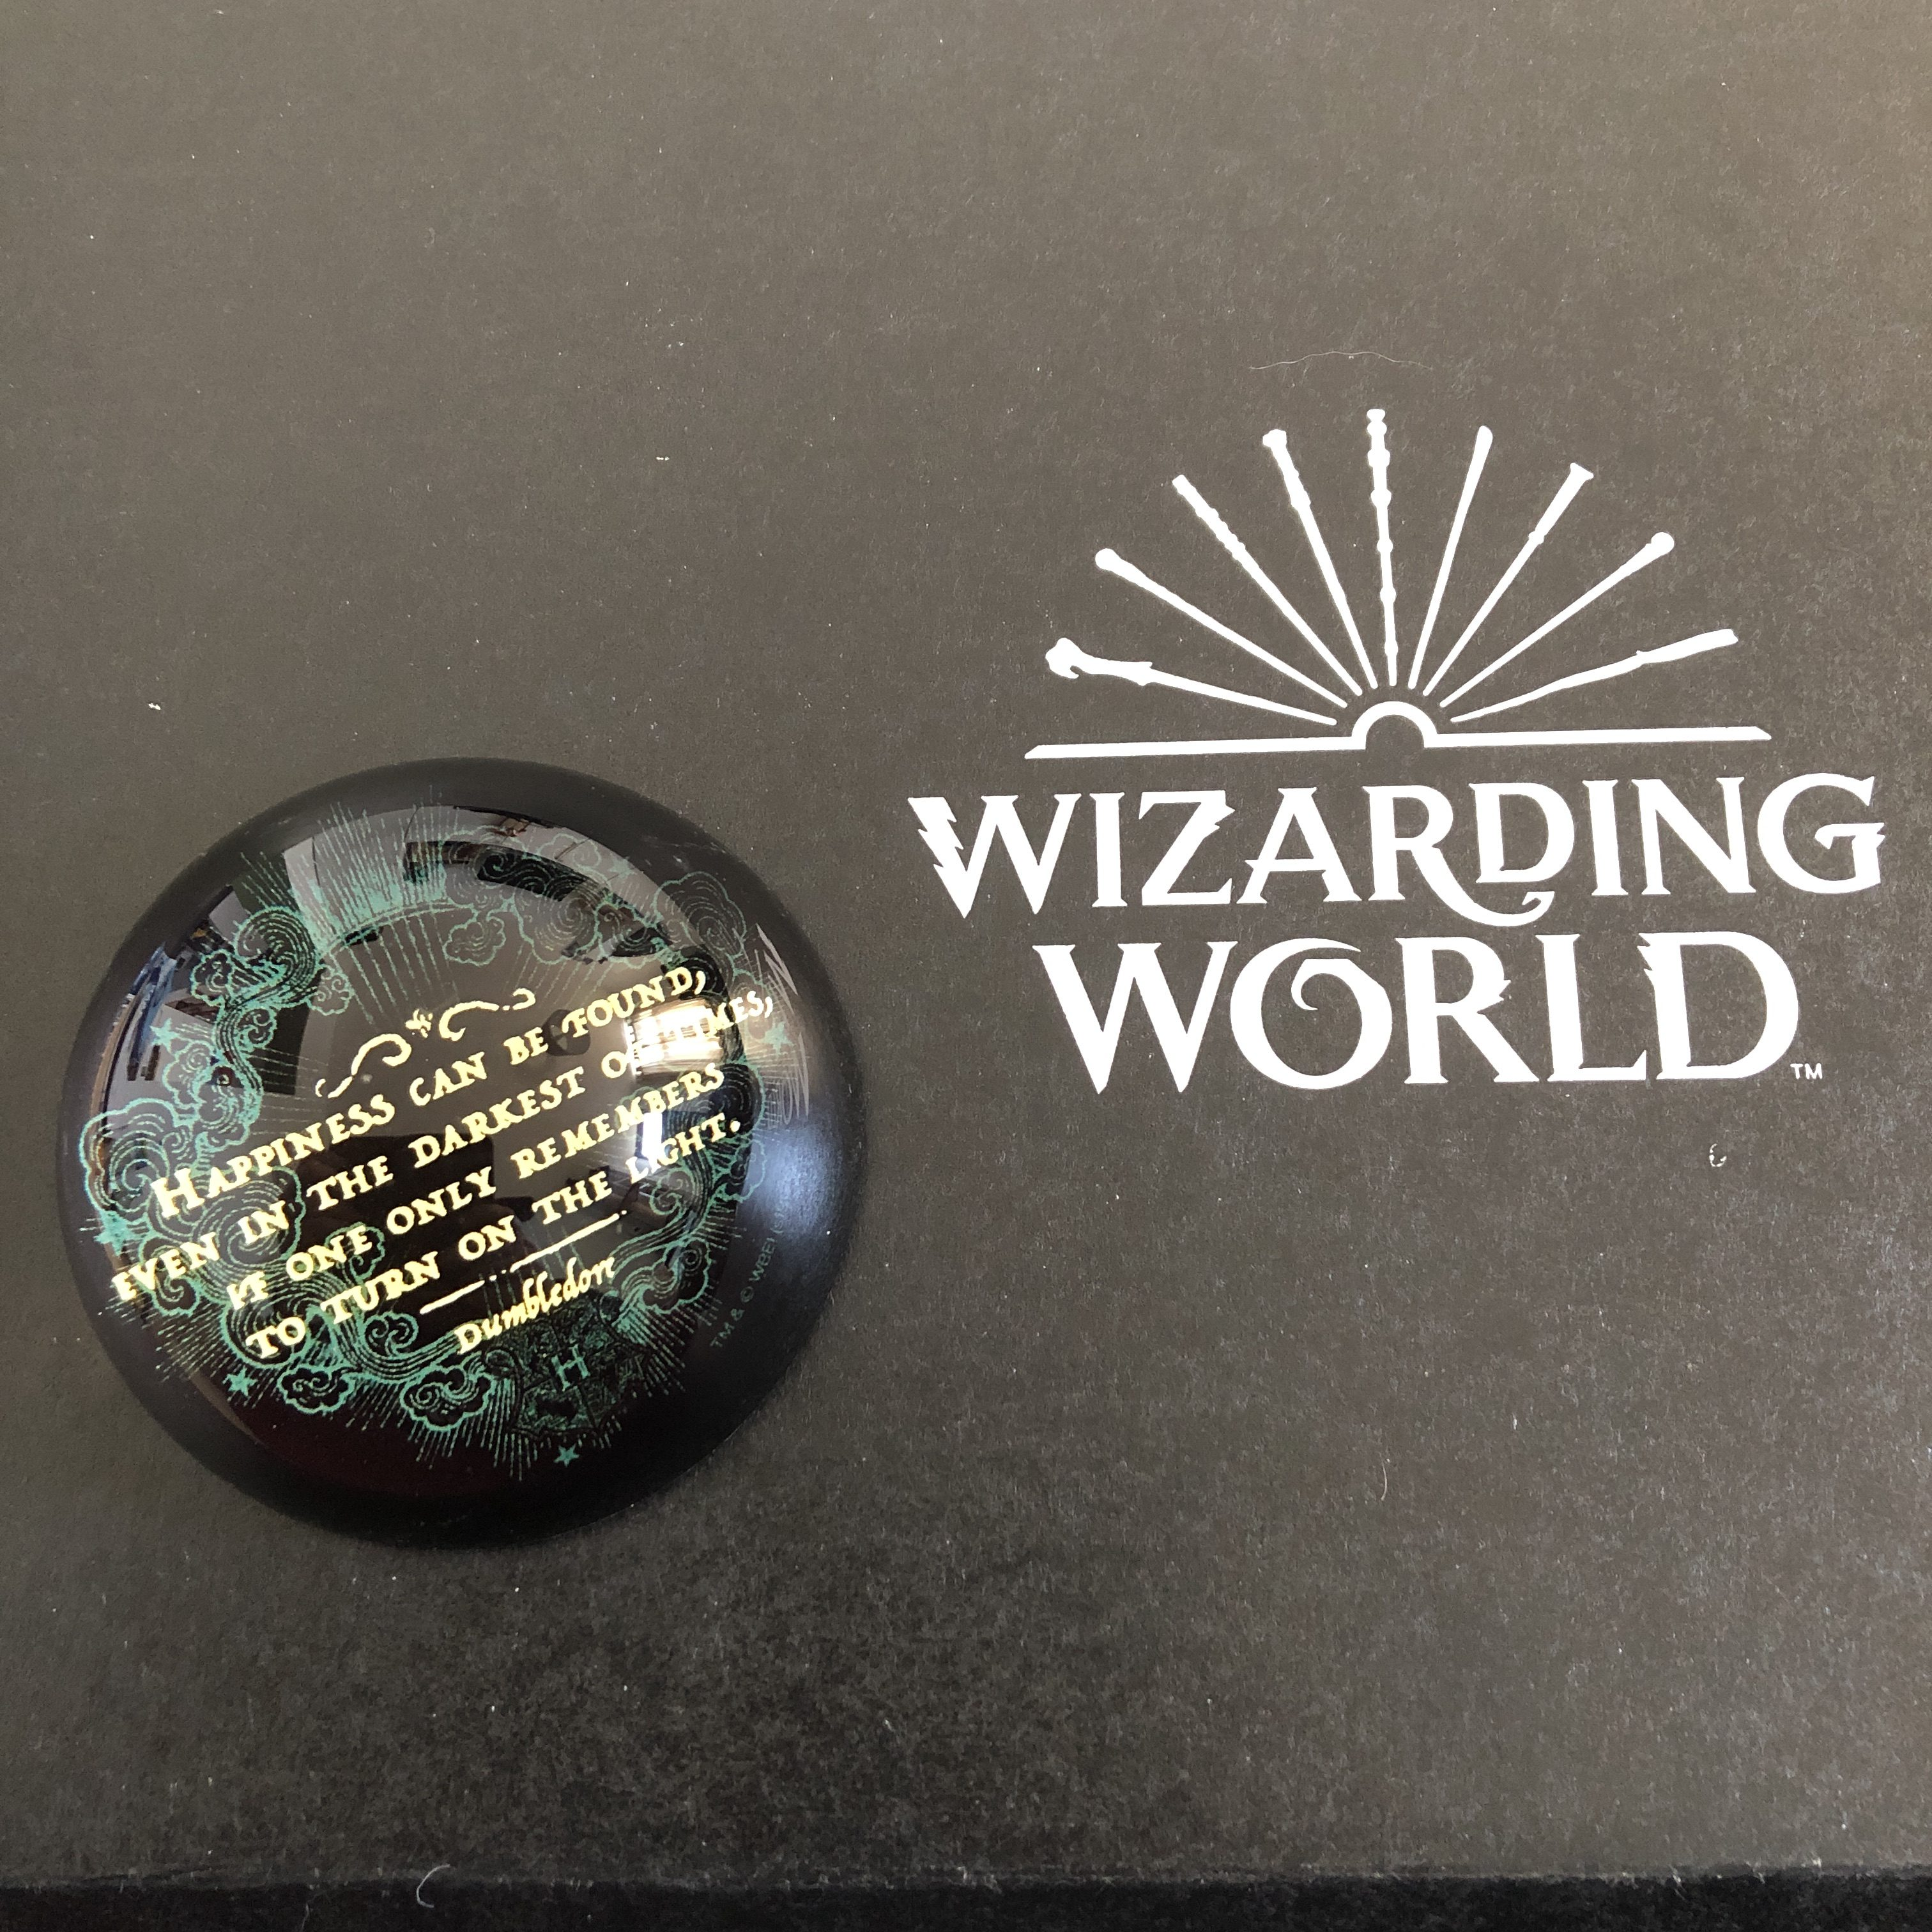 Harry Potter paperweight